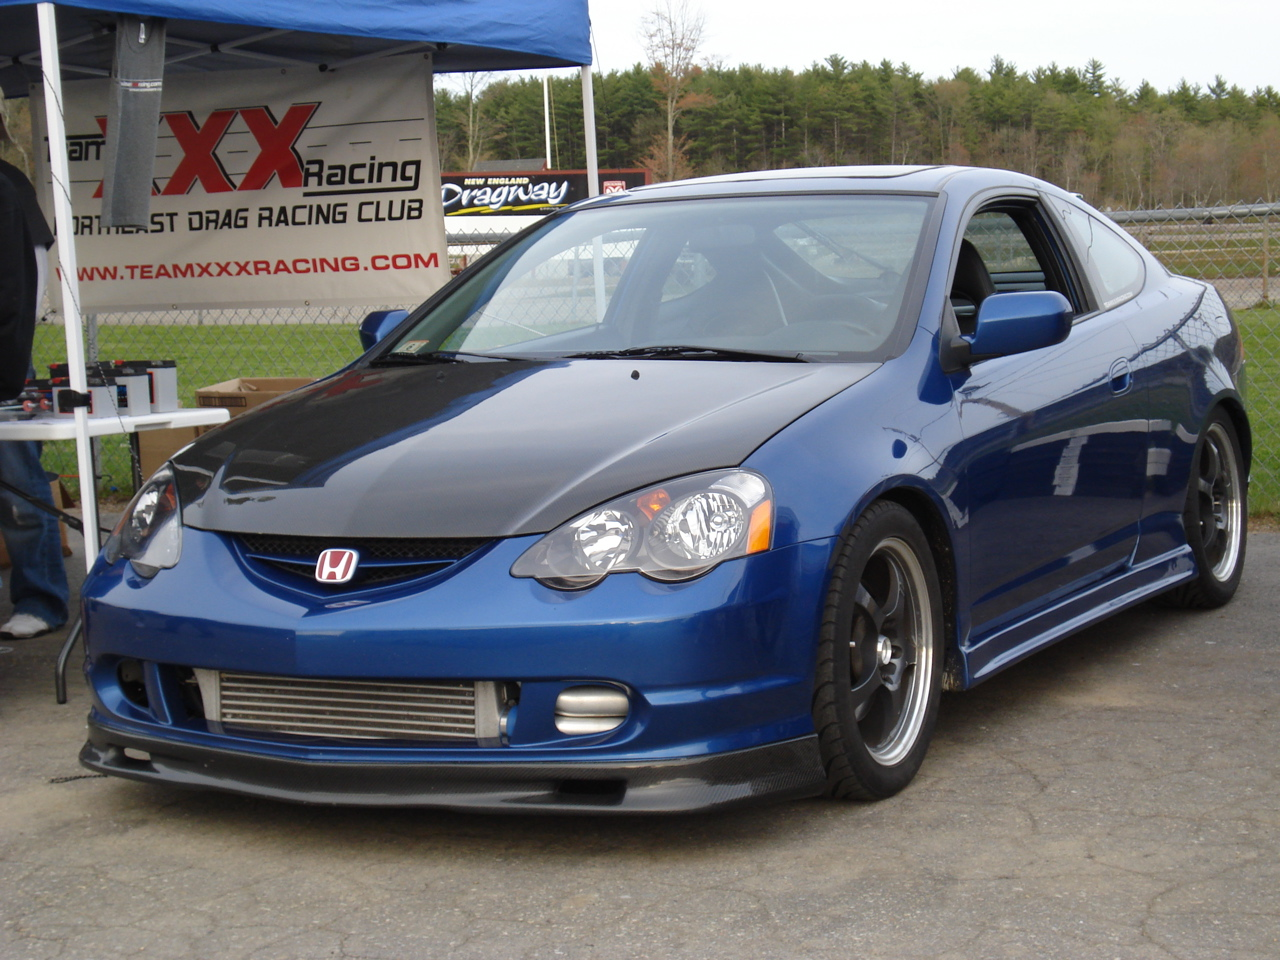 Acura RSX Cars Best Wallpaper